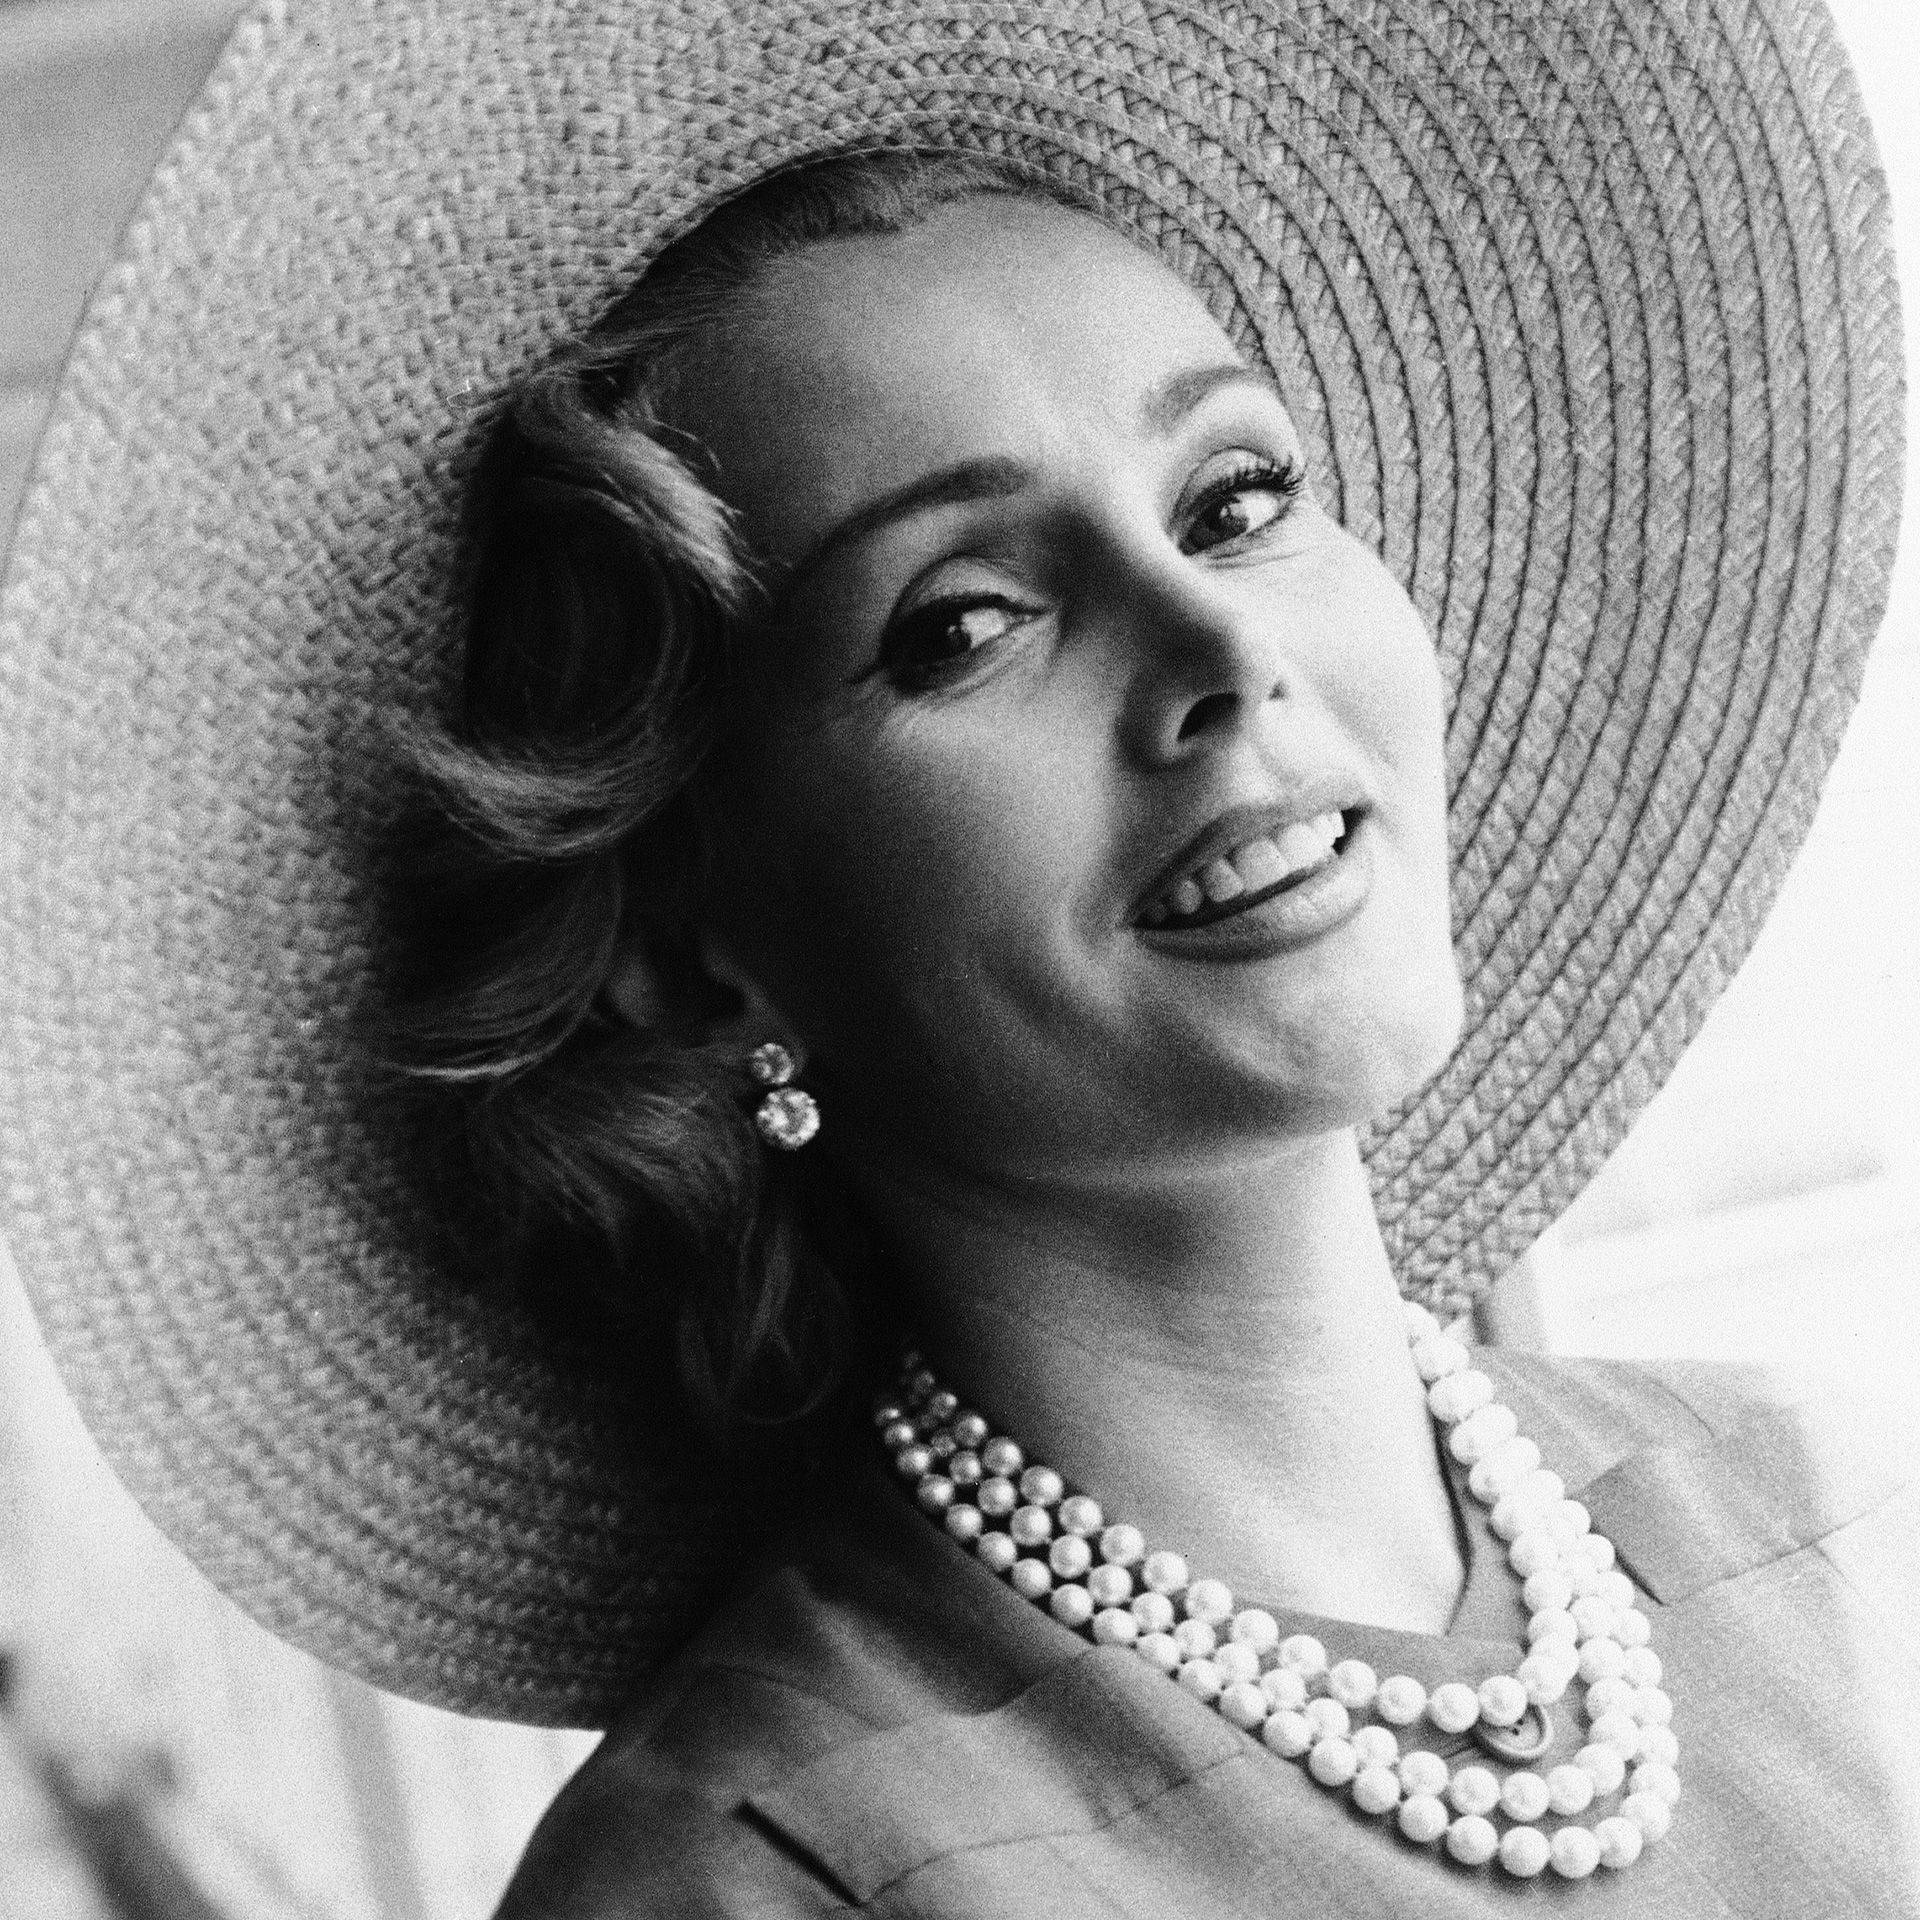 Zsa Zsa Gabor Quotes Zsa Zsa Gabor's Best Quotes  British Vogue